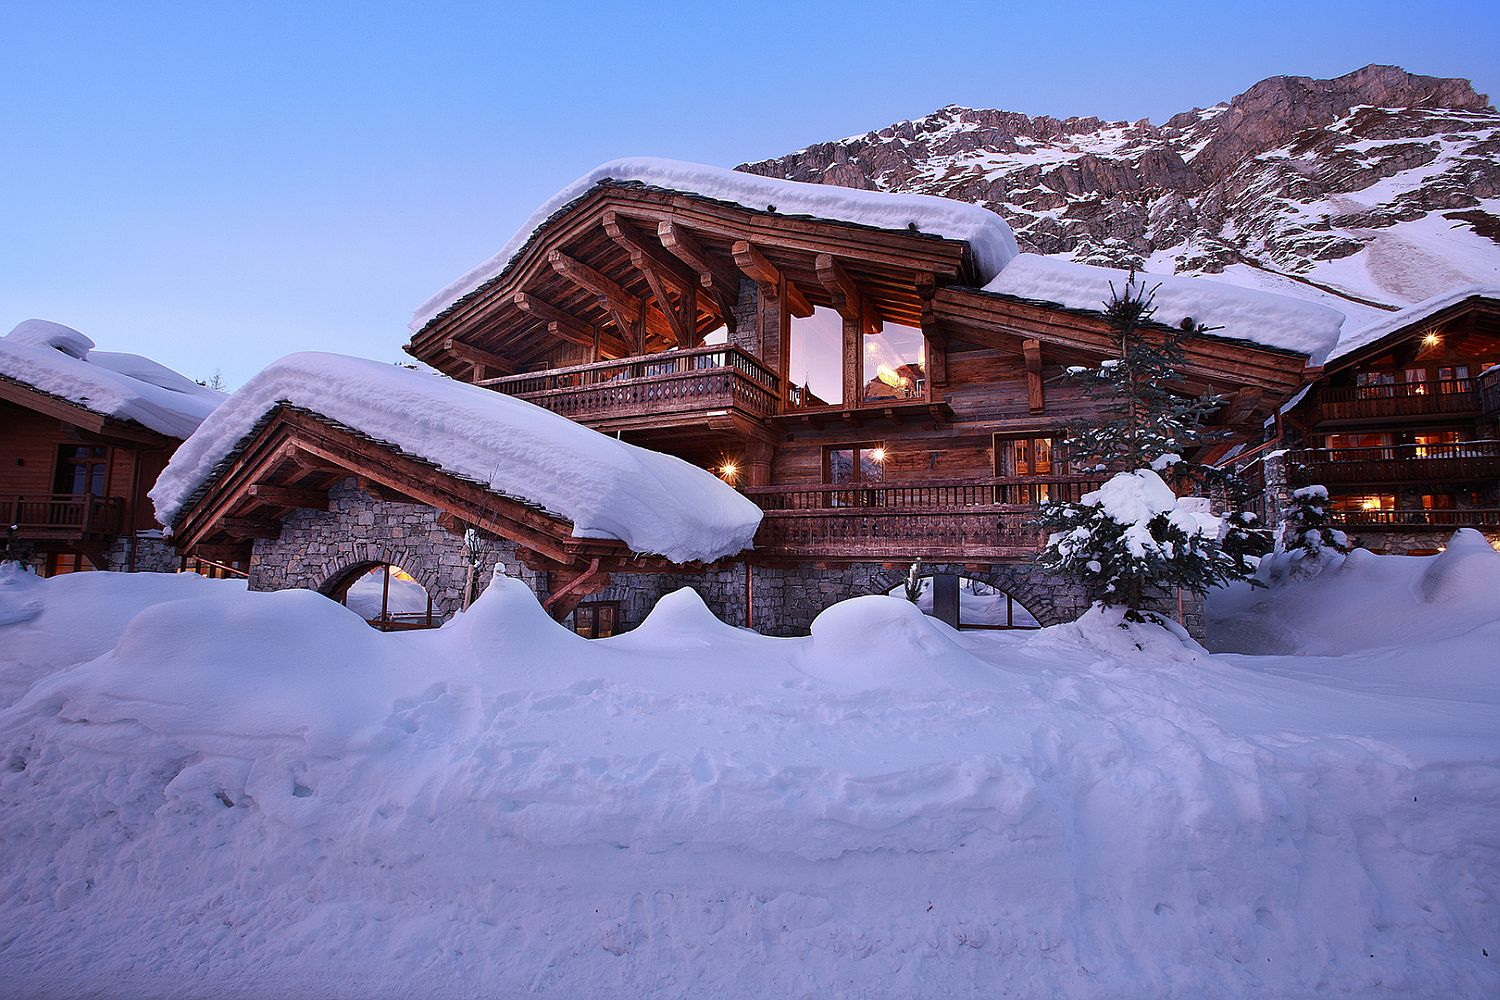 View of Snow-covered landscape around Marco Polo in Val d'Isère